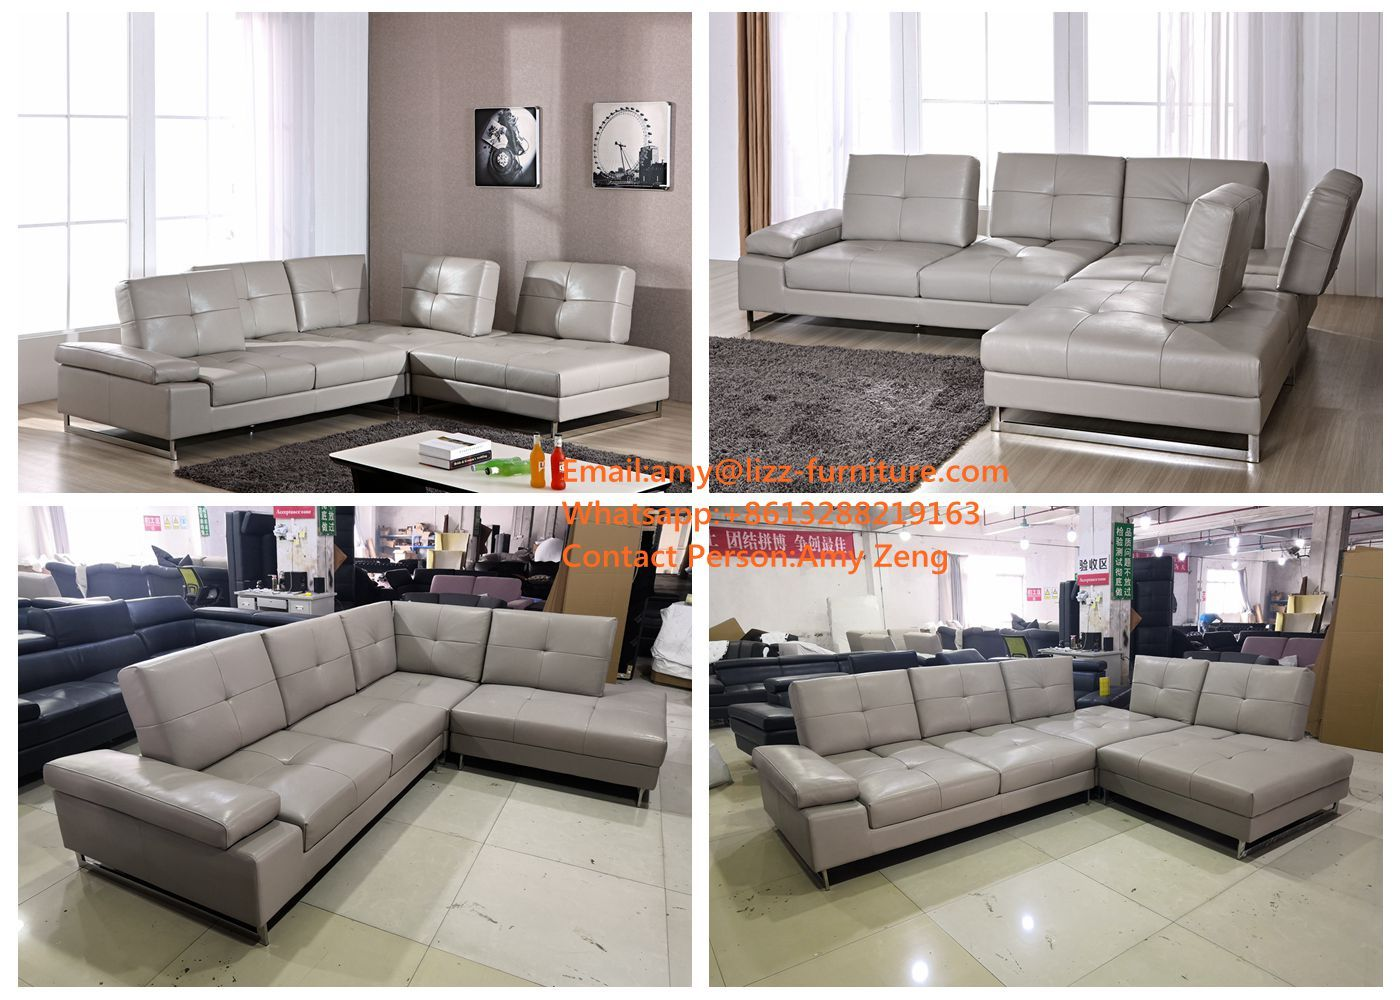 Lizz Furniture New Design Simple Canada Style Corner Sofa With Adjustable Backrest That You Can Choose The Best Depth For Your Body Corner Sofa Furniture Couch